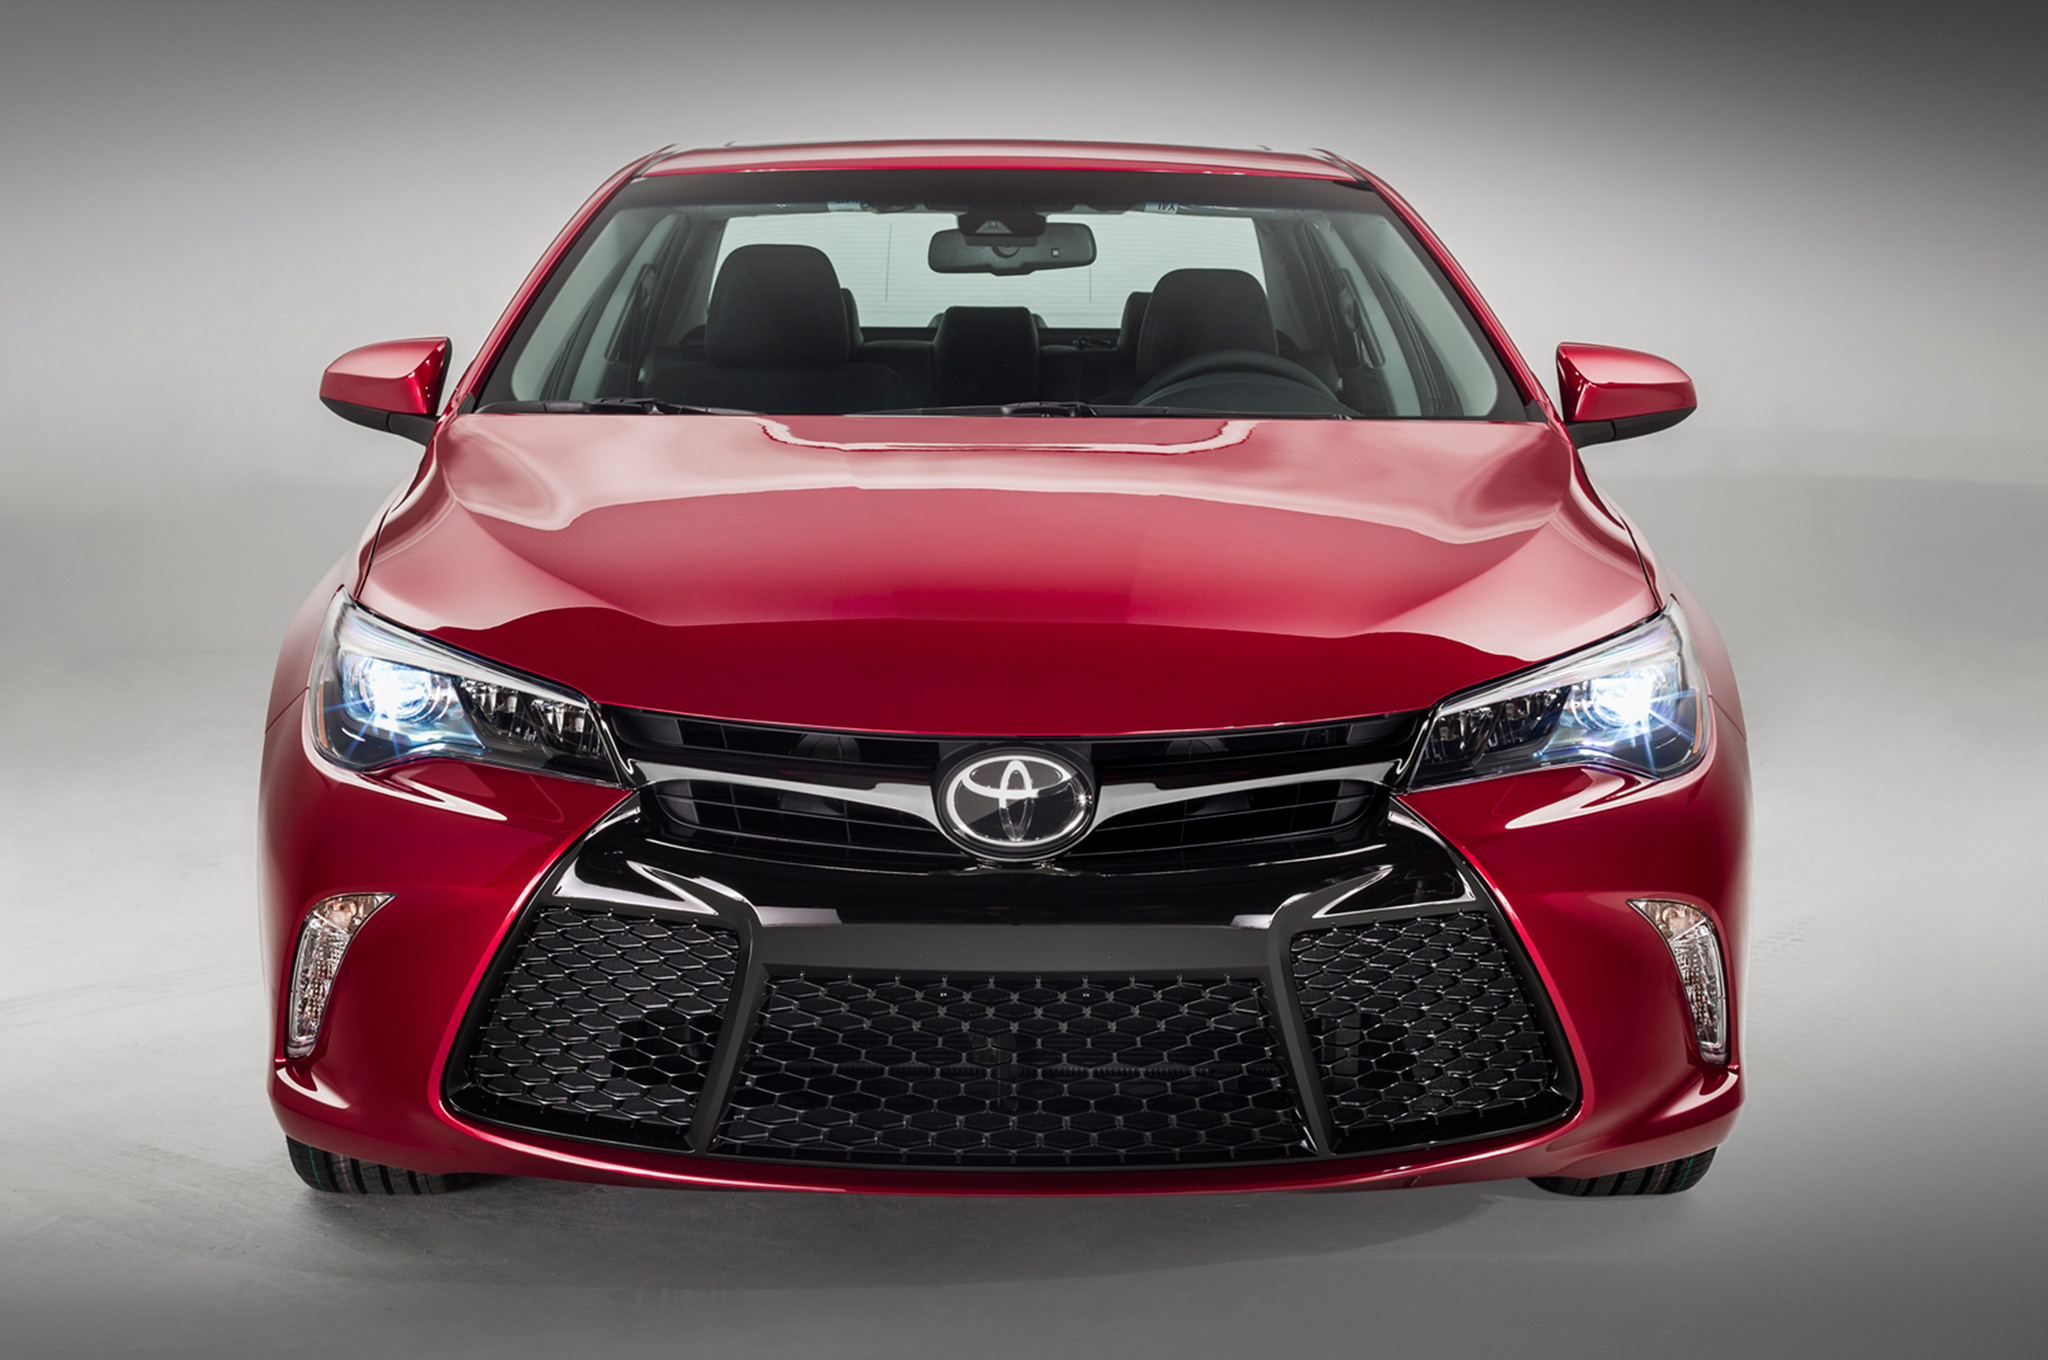 all new 2015 toyota camry front model 968 cars. Black Bedroom Furniture Sets. Home Design Ideas